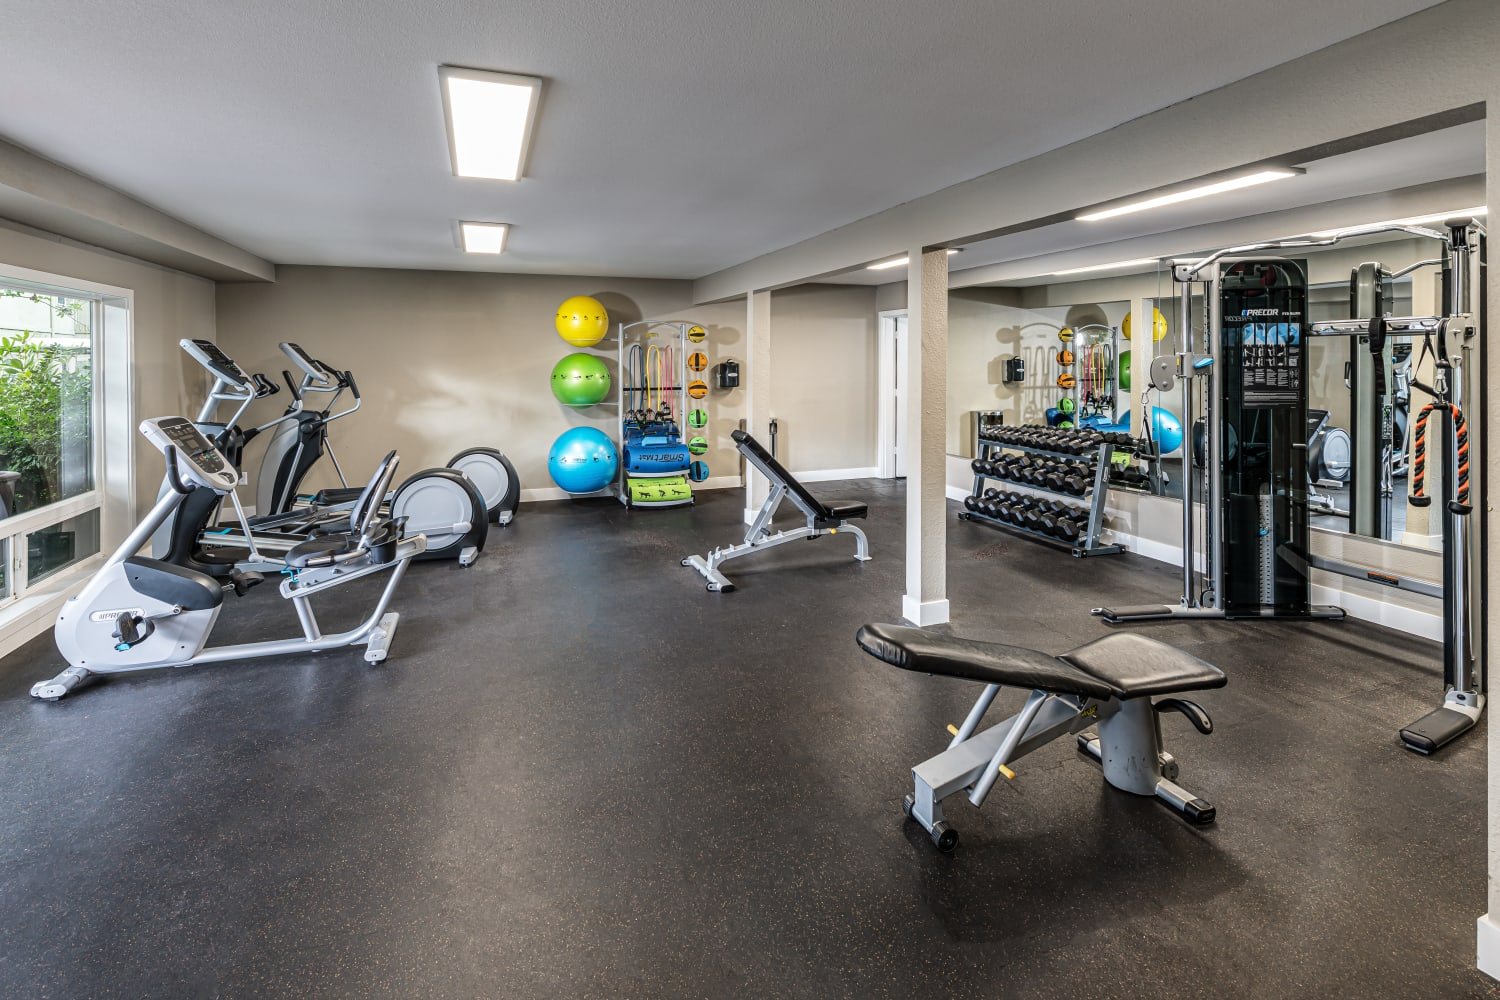 Fitness center at Edgewood Park Apartments in Bellevue, Washington